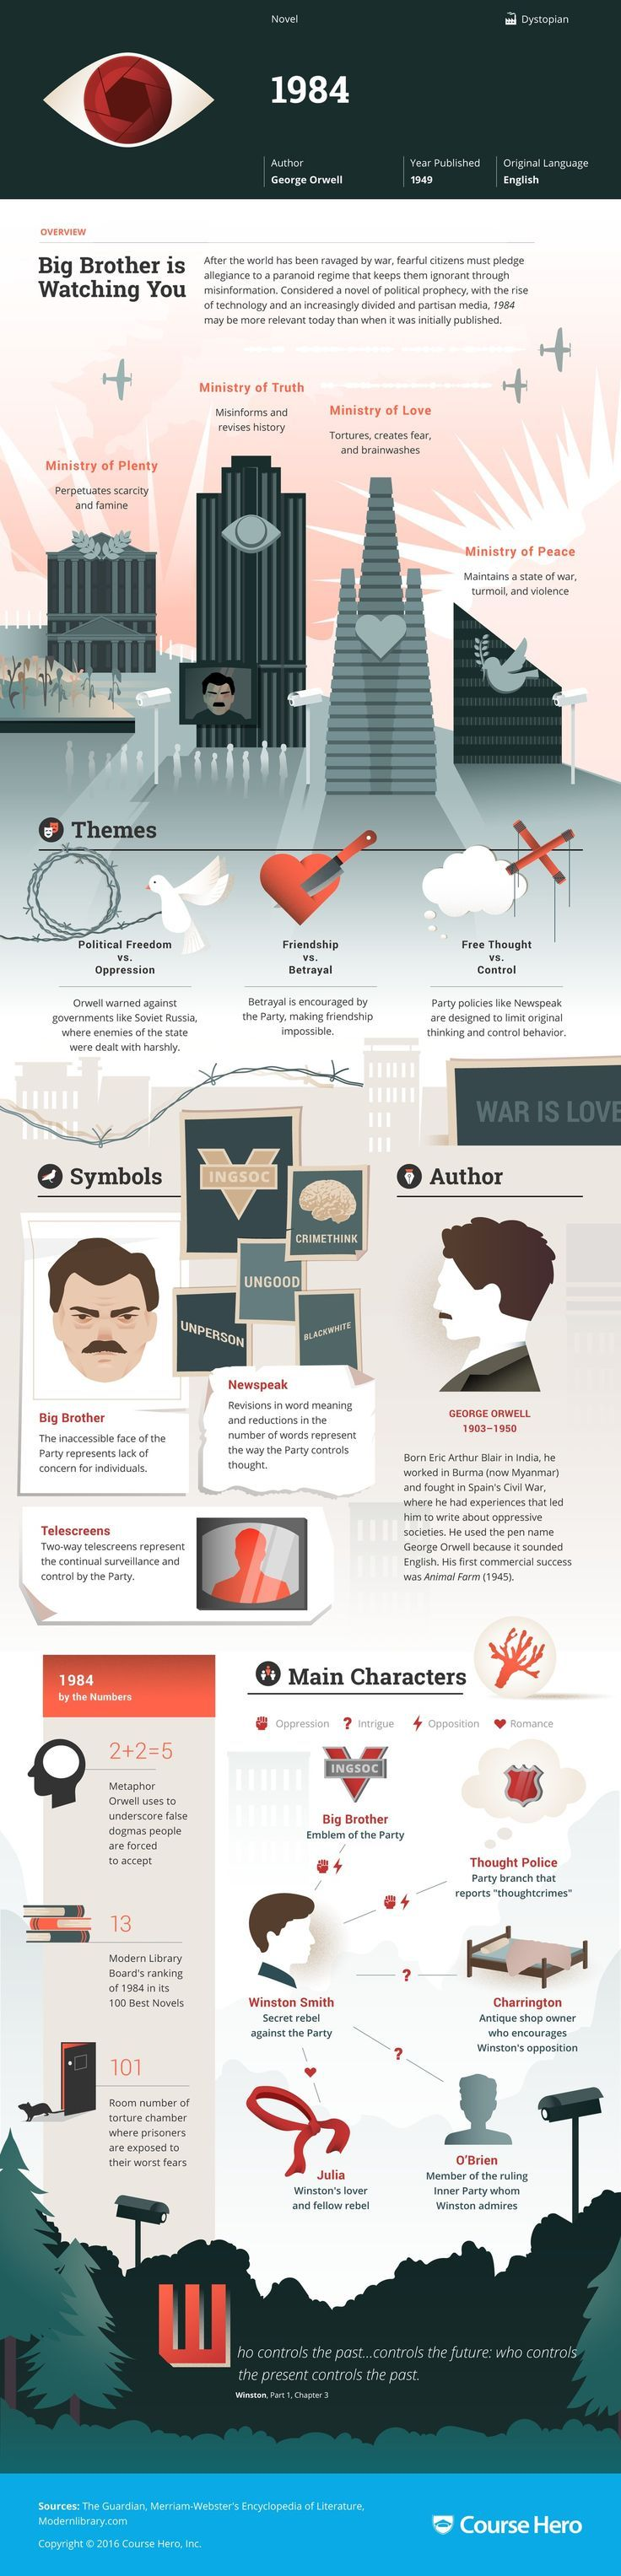 best dystopia lesson plans images high school george orwell s 1984 infographic to help you understand everything about the book visually learn all about the characters themes and george orwell